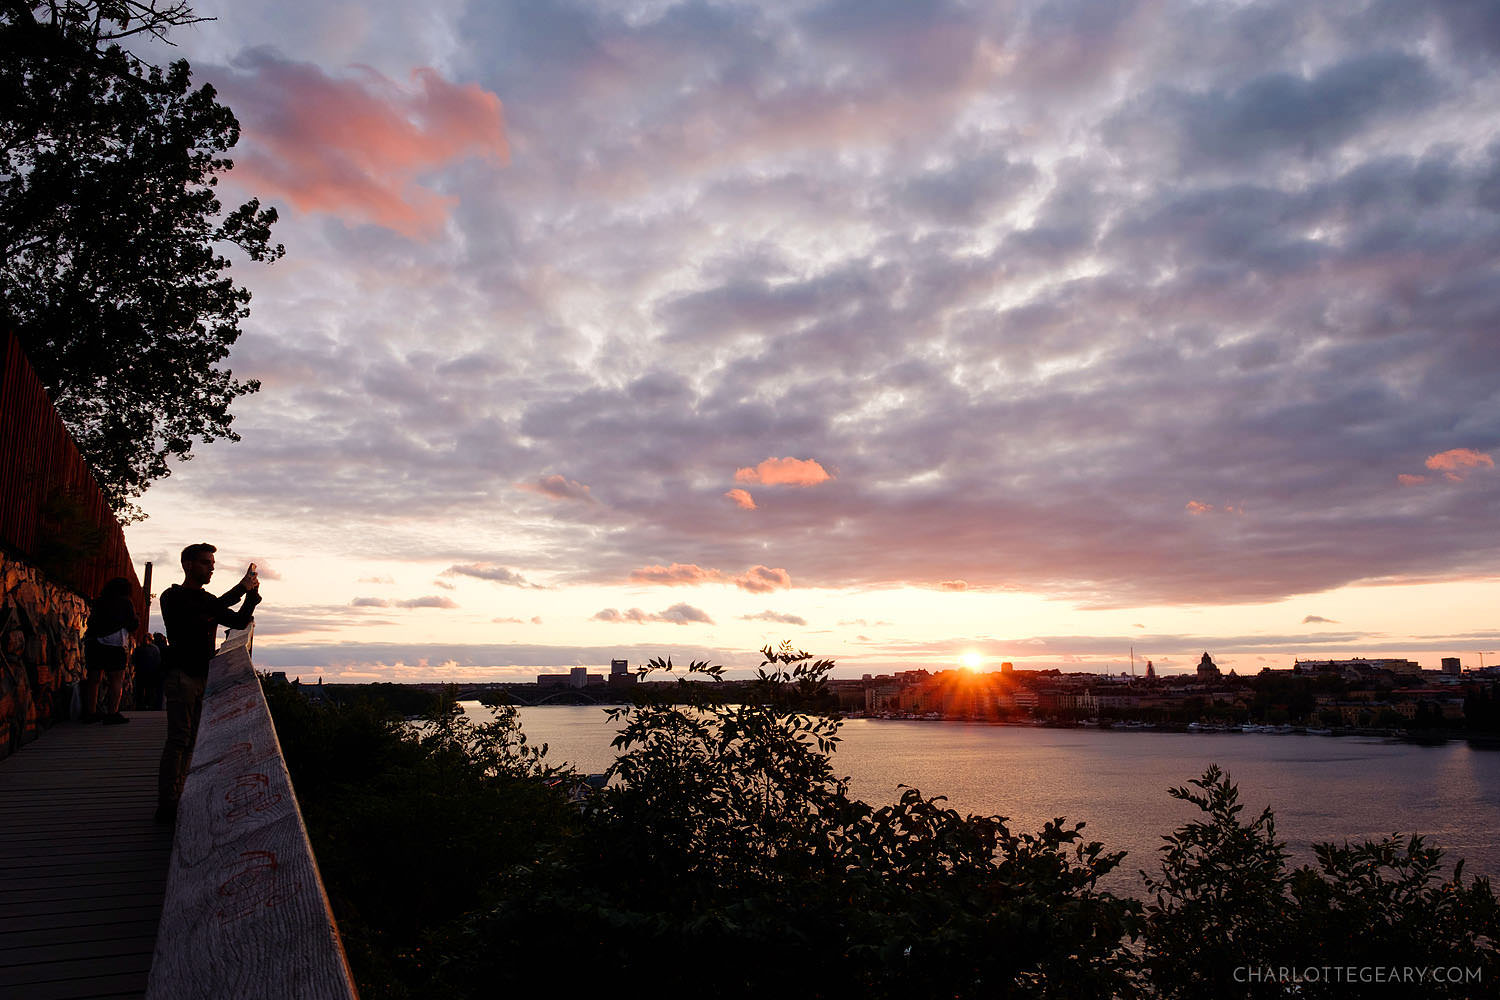 Sunset view from the Monteliusvägen cliffside trail in Stockholm